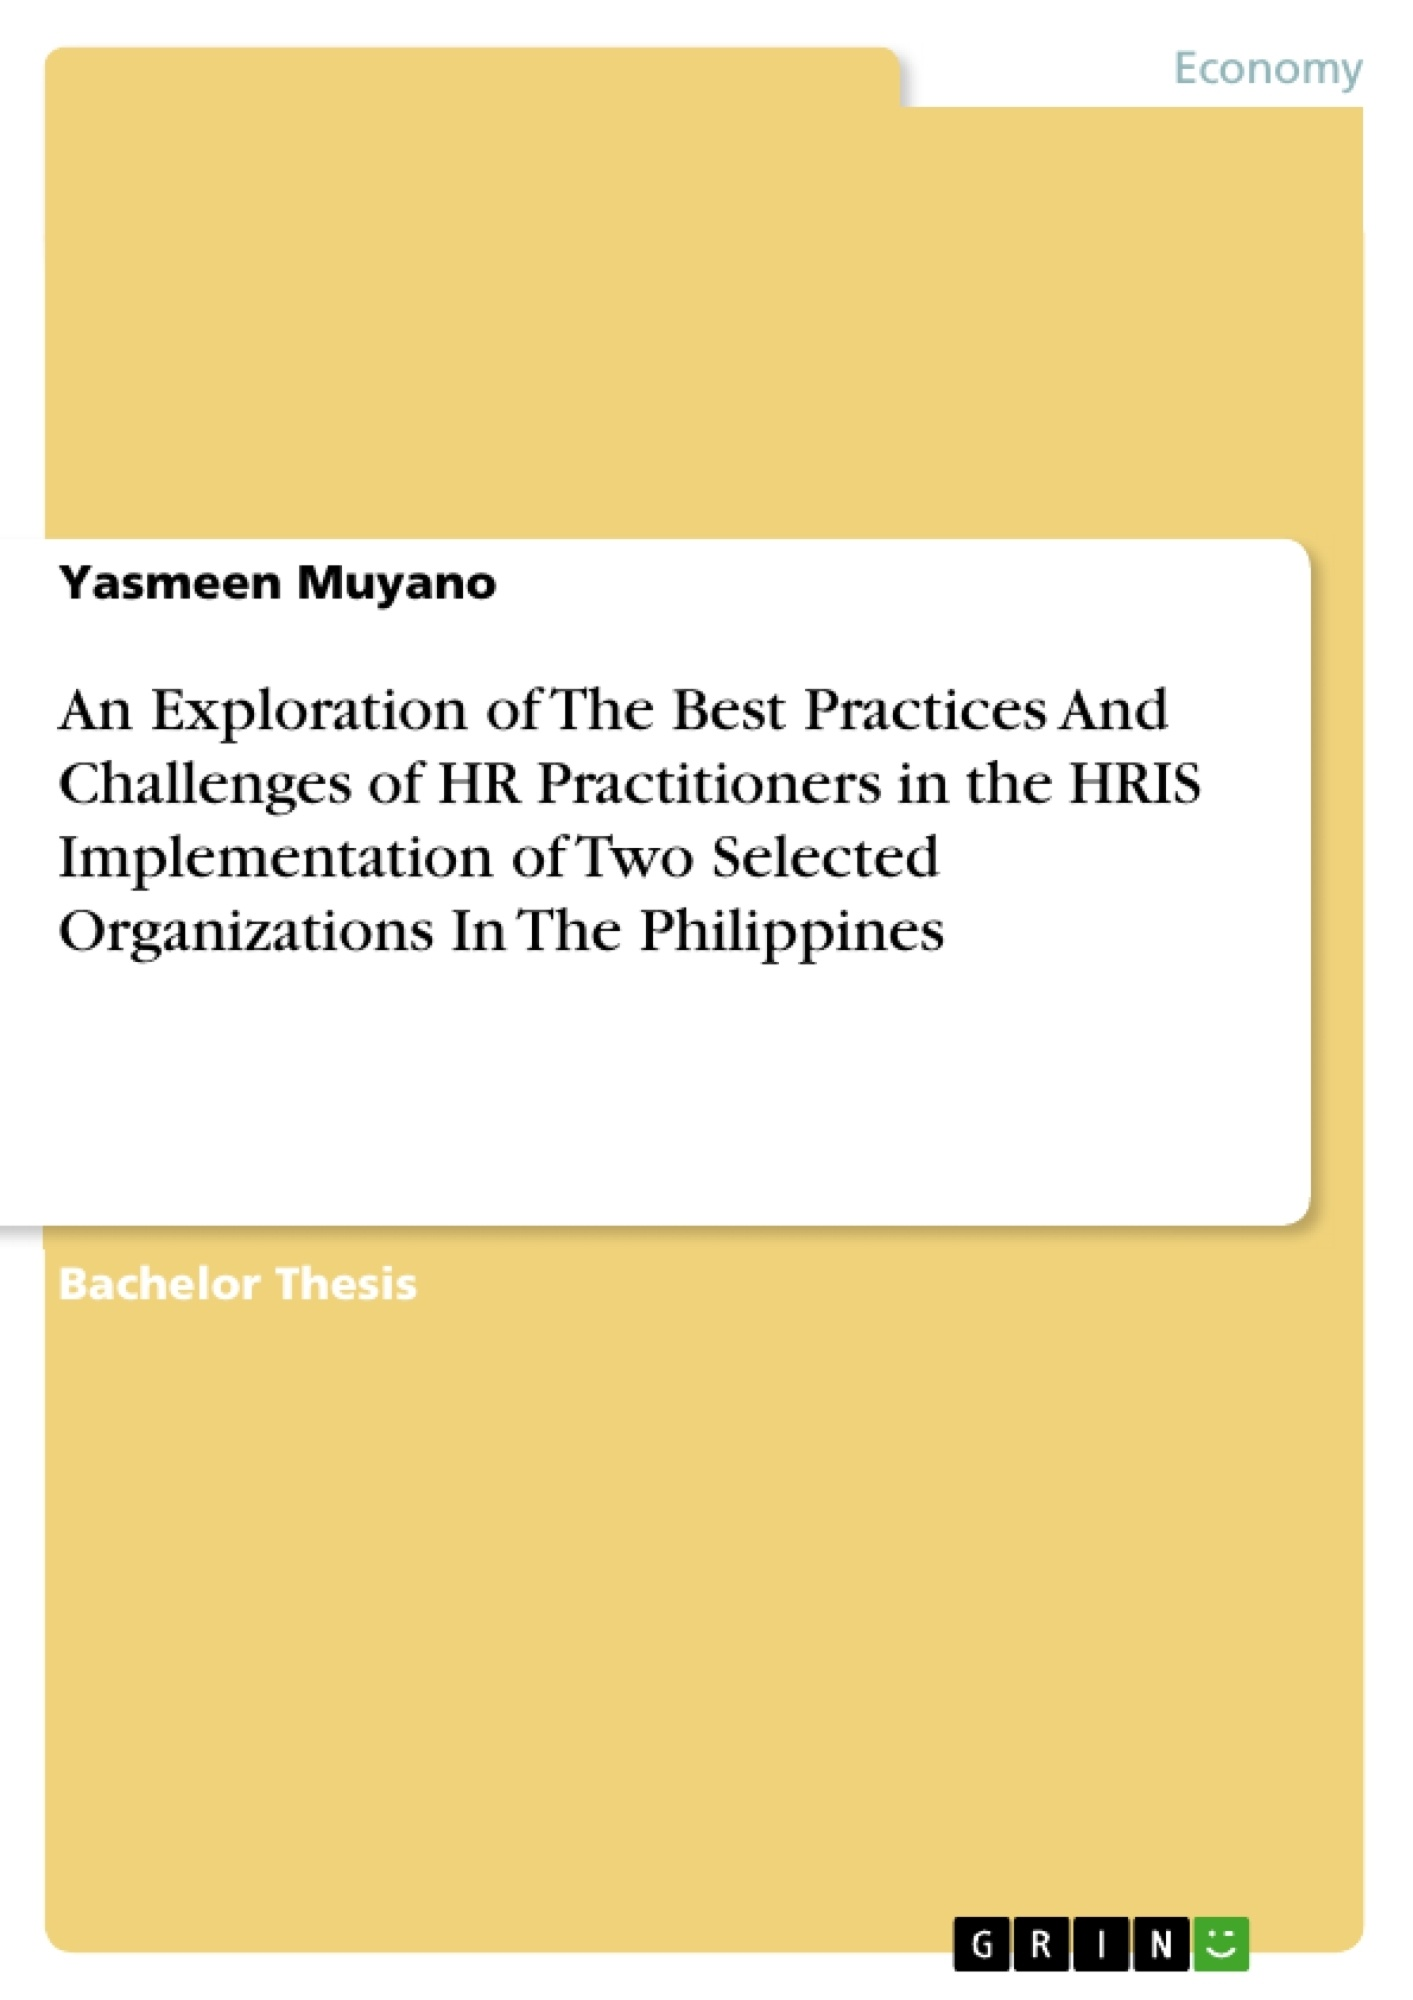 Title: An Exploration of The Best Practices And Challenges of HR Practitioners in the HRIS Implementation of Two Selected Organizations In The Philippines